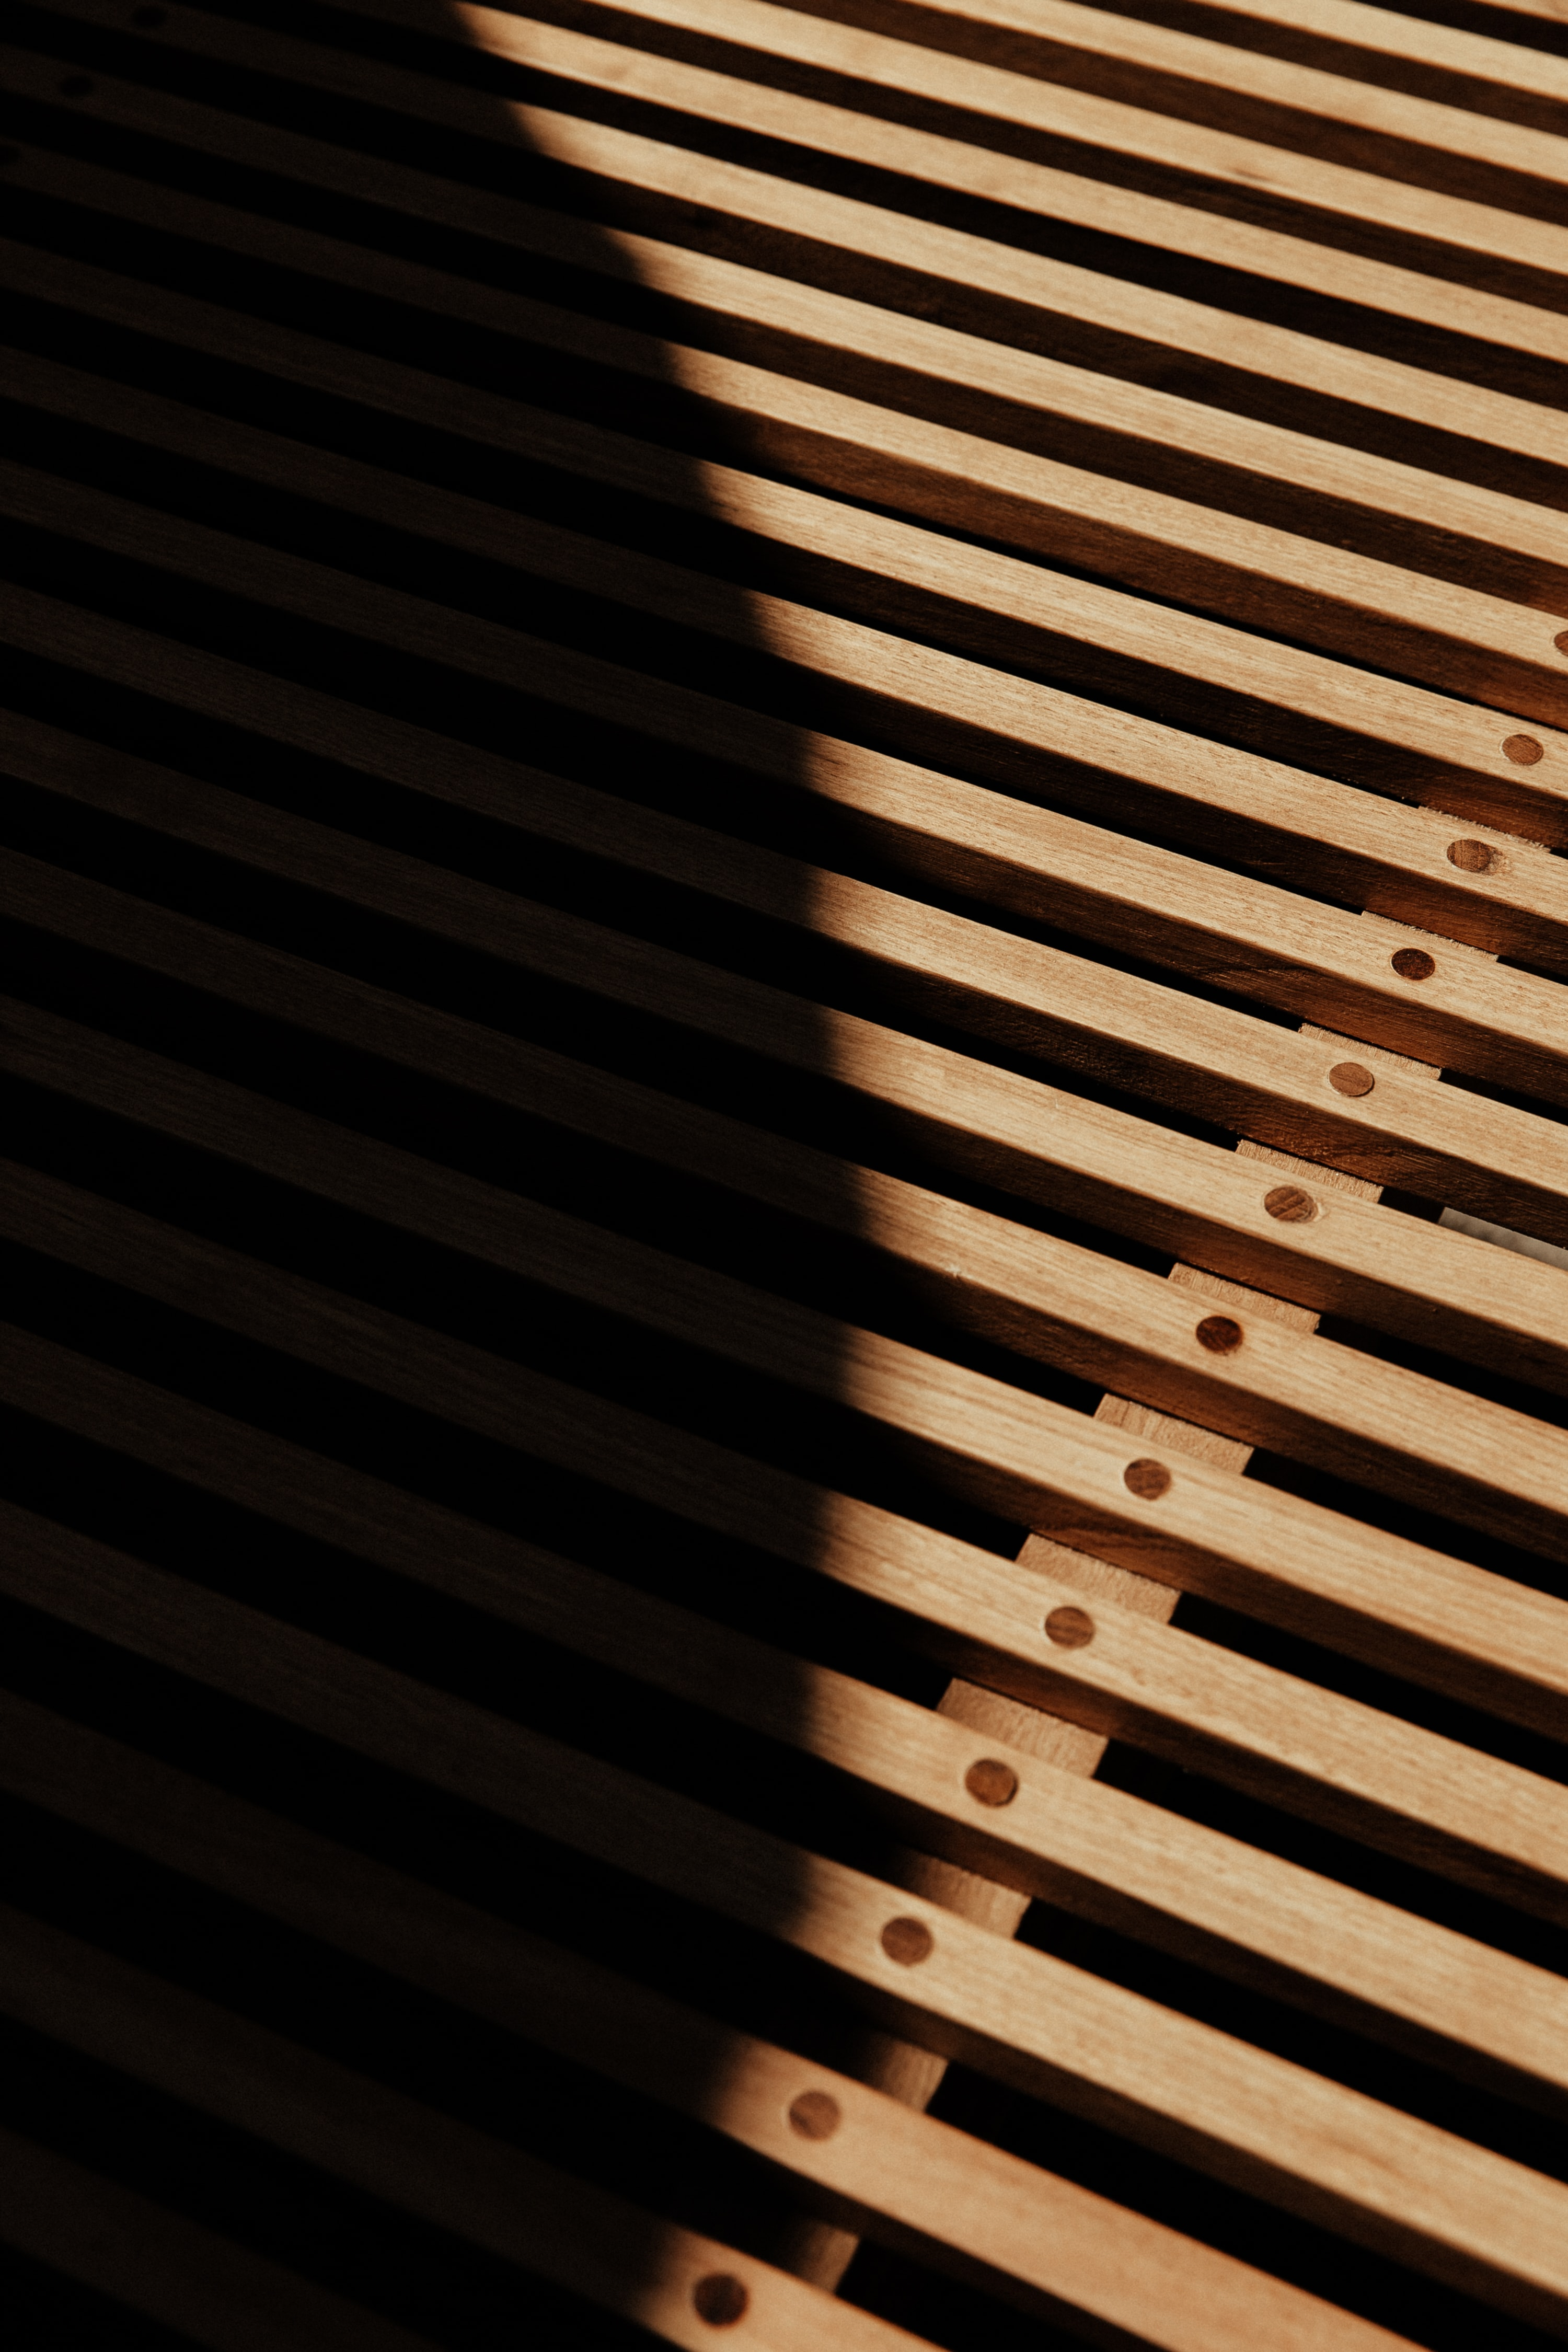 148356 download wallpaper Textures, Texture, Wood, Tree, Planks, Board, Stripes, Streaks, Shadow screensavers and pictures for free